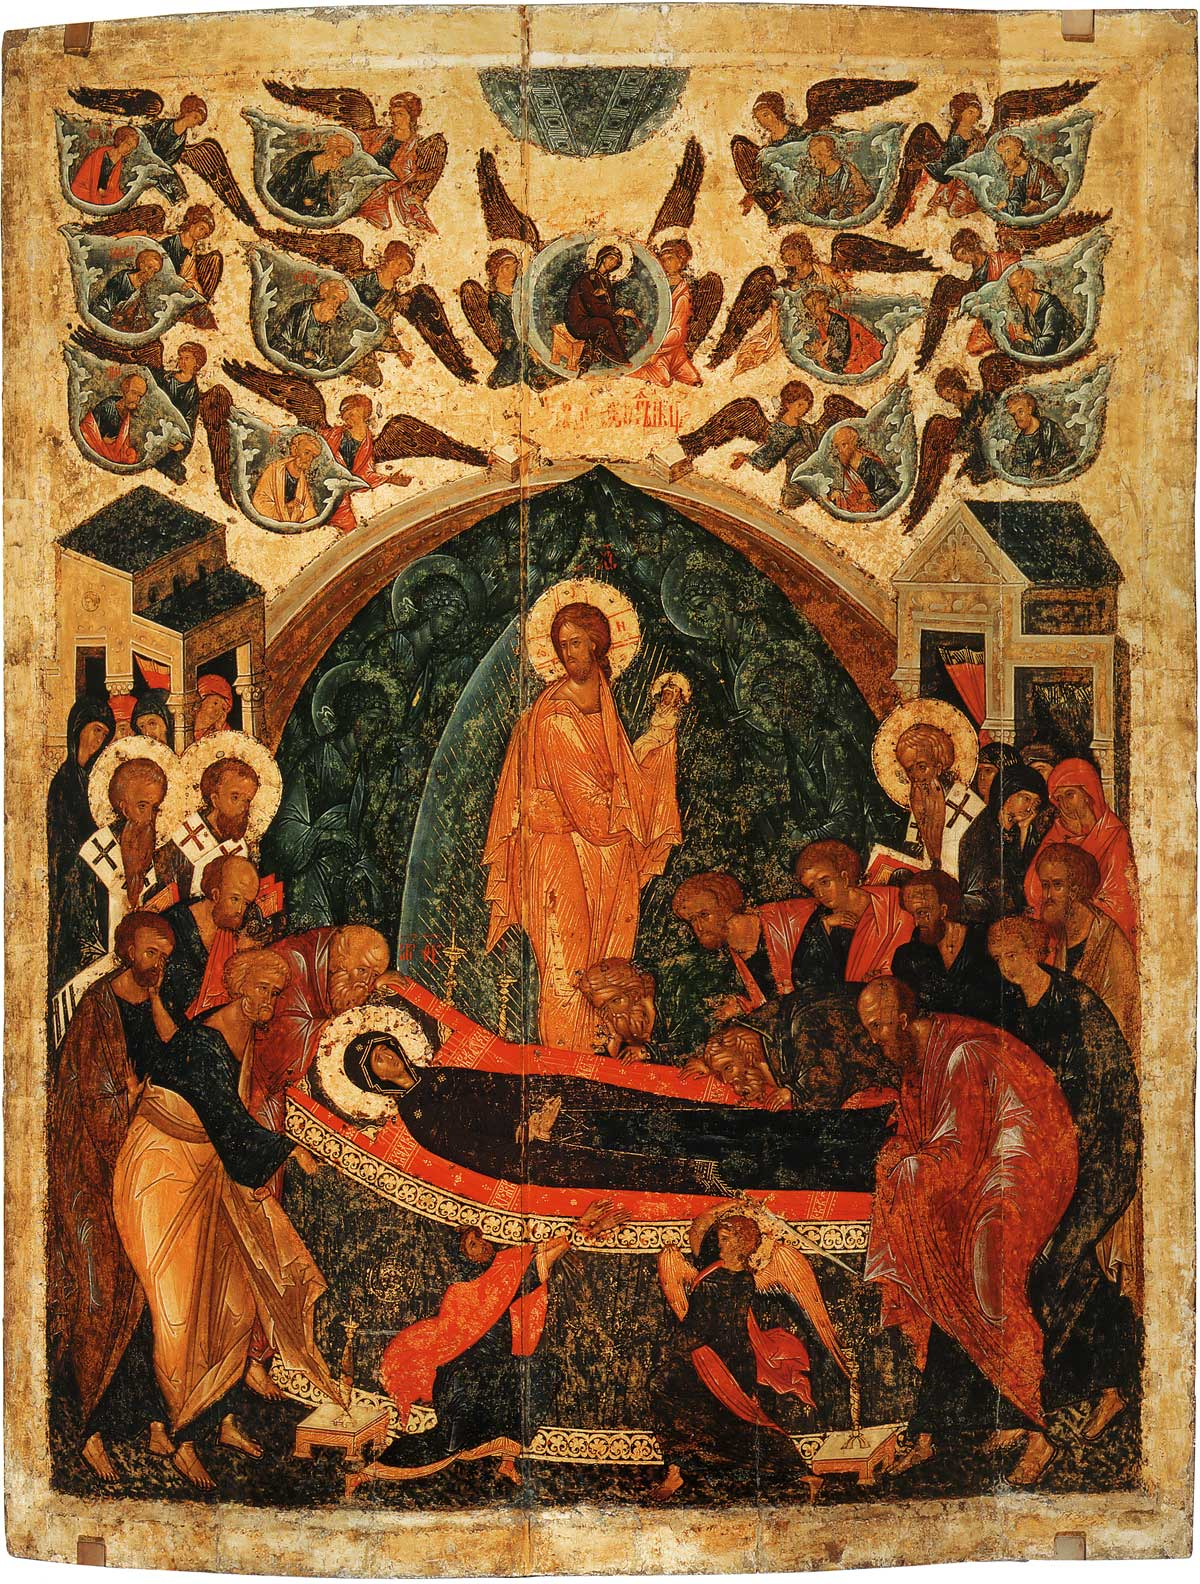 Dormition of the Theotokos - Festal Icon